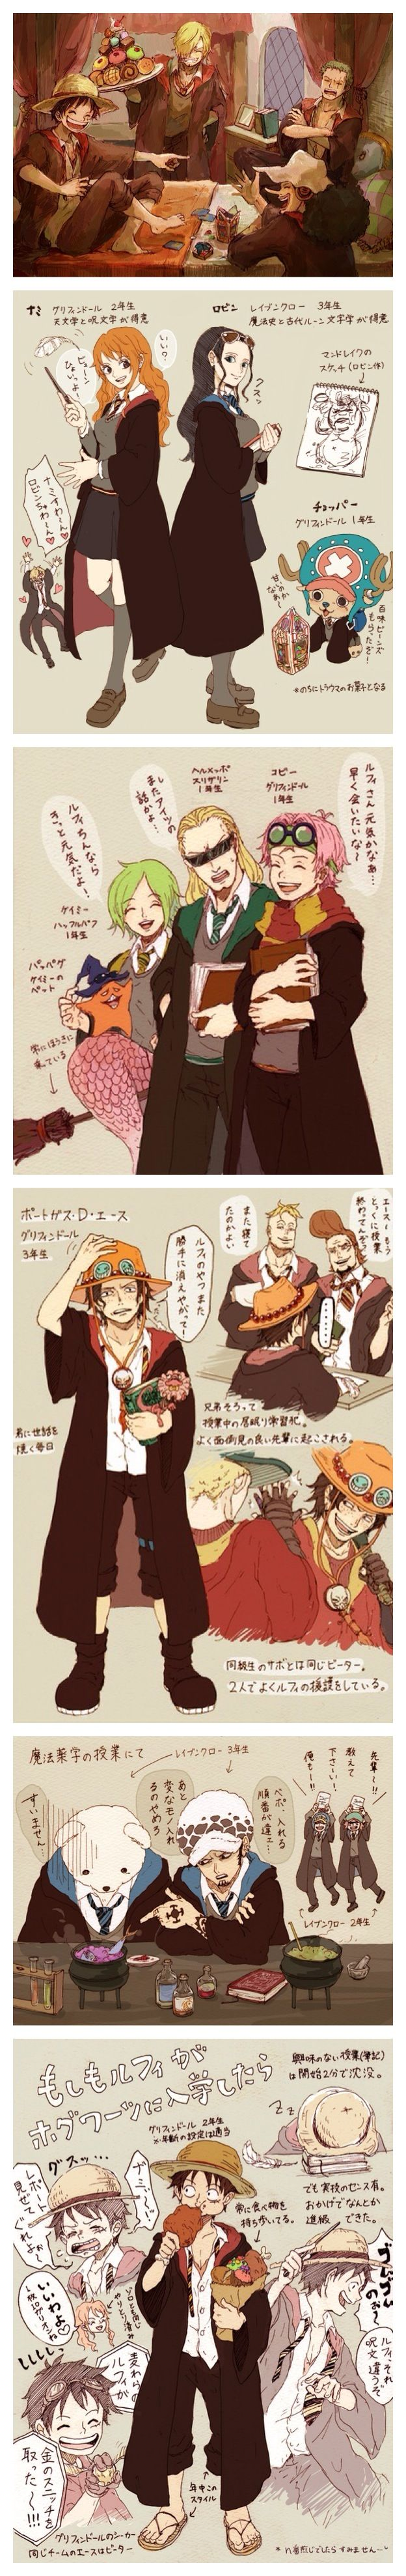 One Piece in Harry Potter. Two most series I like is together ♥ #hp #crossover #onepiece